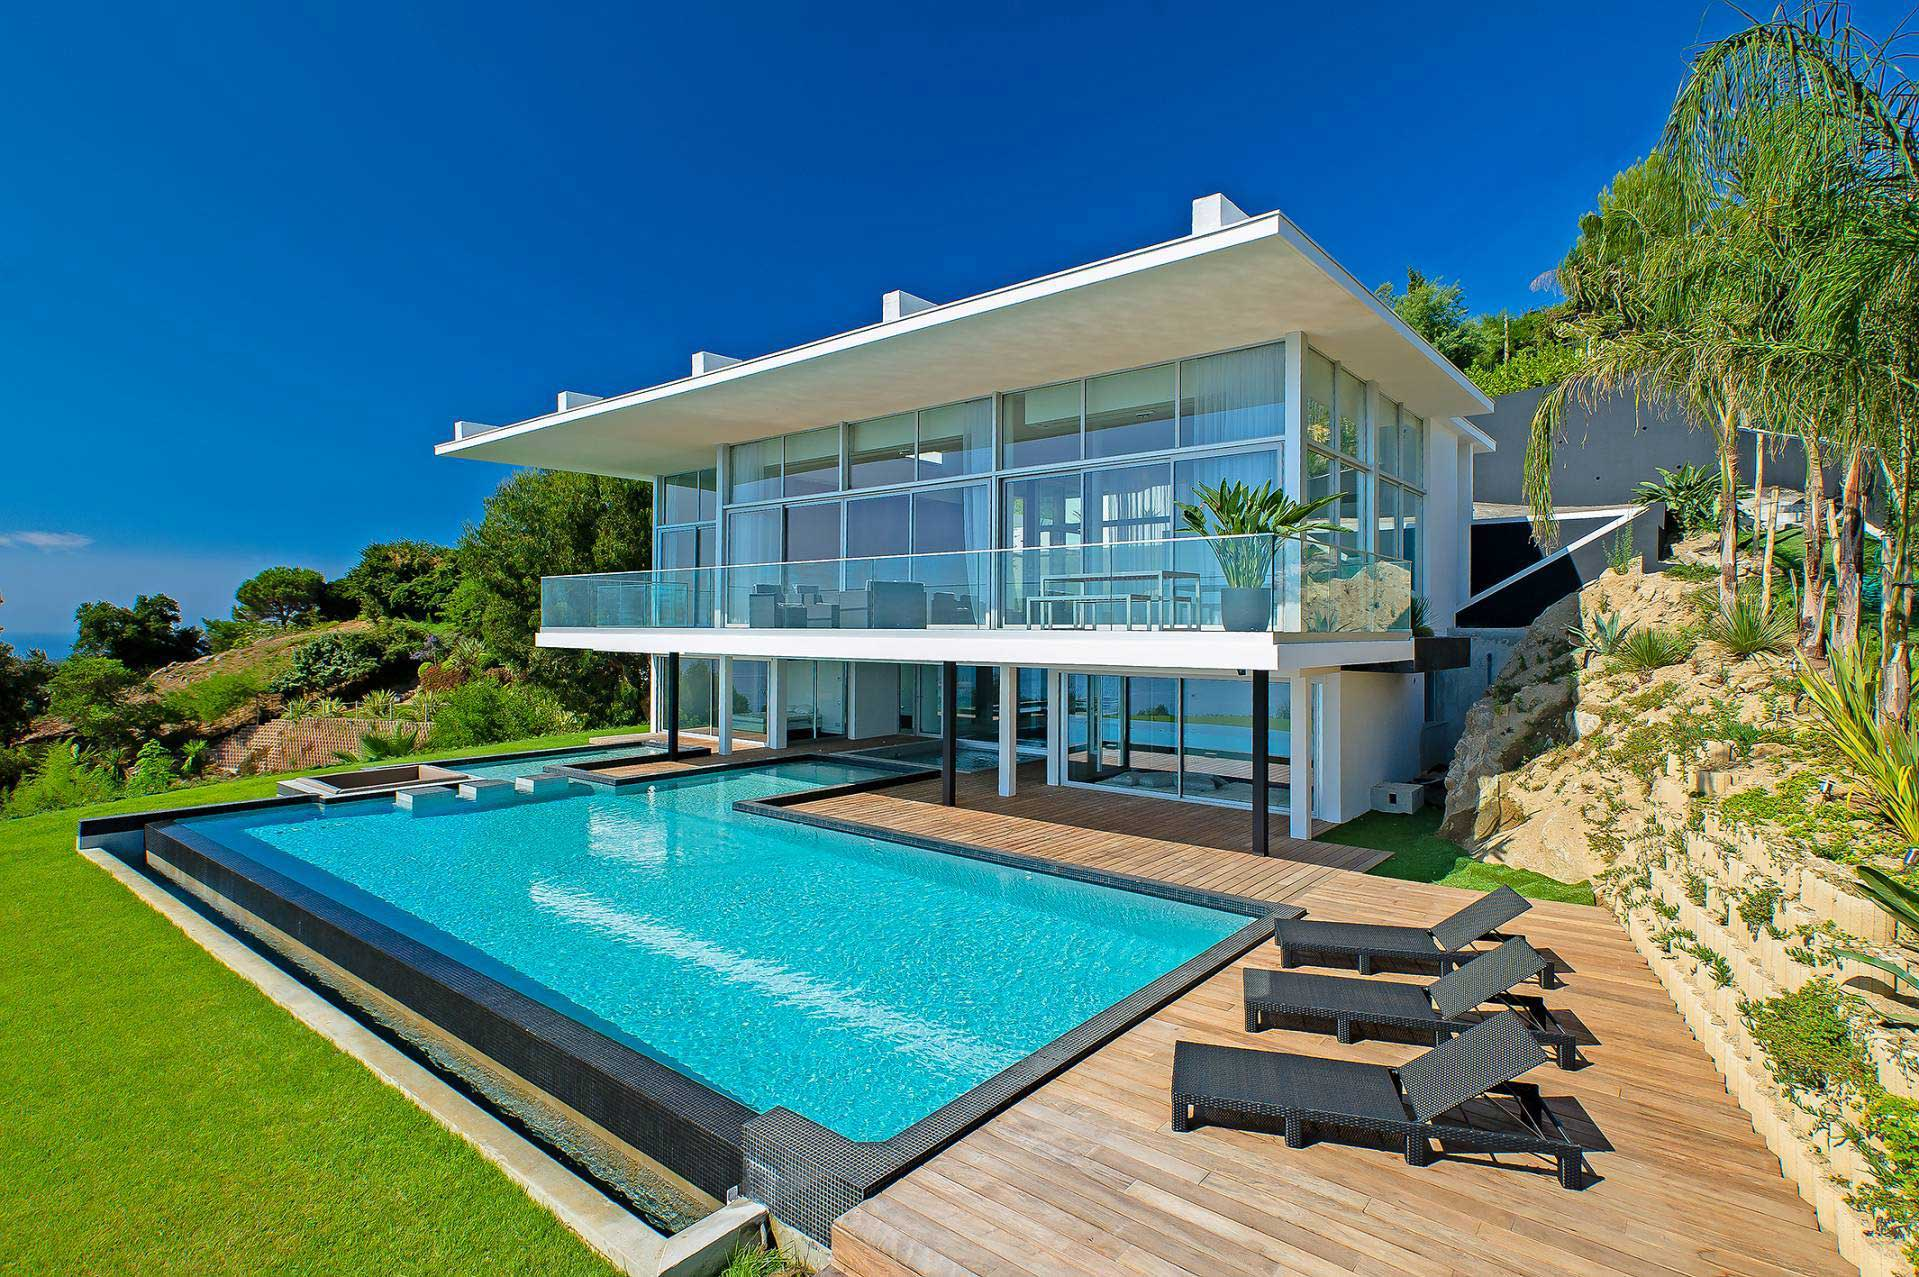 Villa contemporaine avec piscine saint tropez - Amenagement piscine contemporaine marseille ...